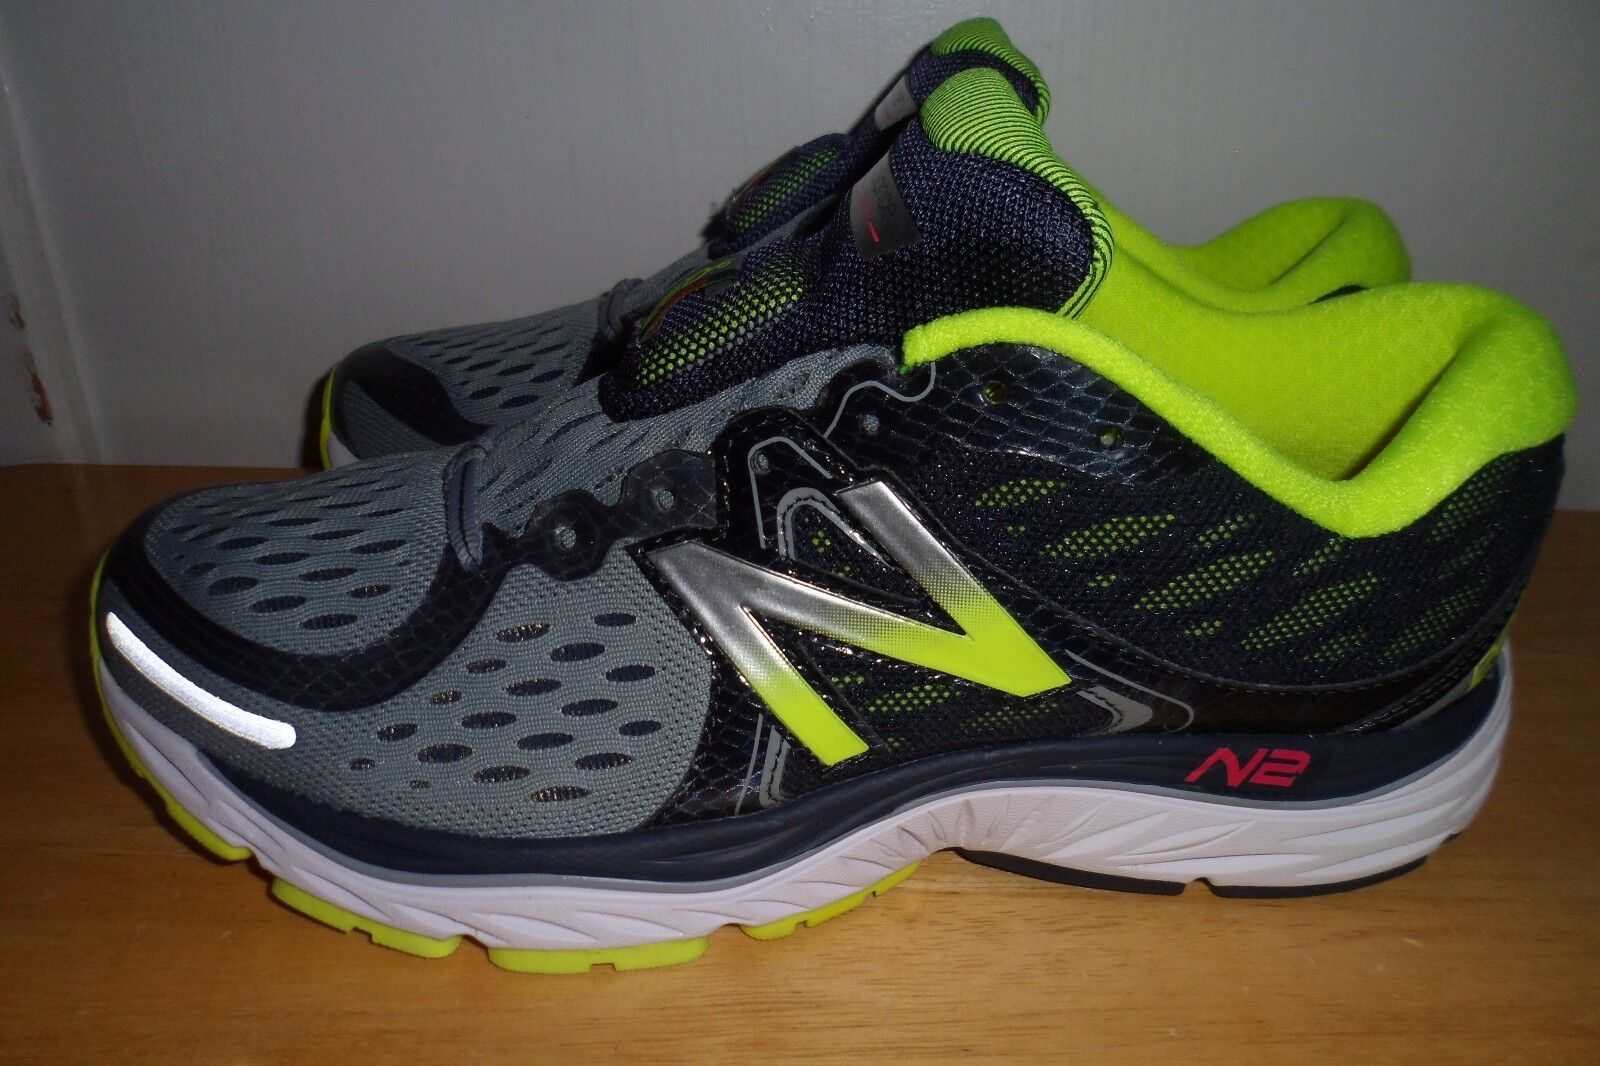 MUST SEE AWESOME  149.99 2016 NEW BALANCE 8 1260v6 M1260GY6 Uomo 8 BALANCE D MINT CONDITION 94c8d1